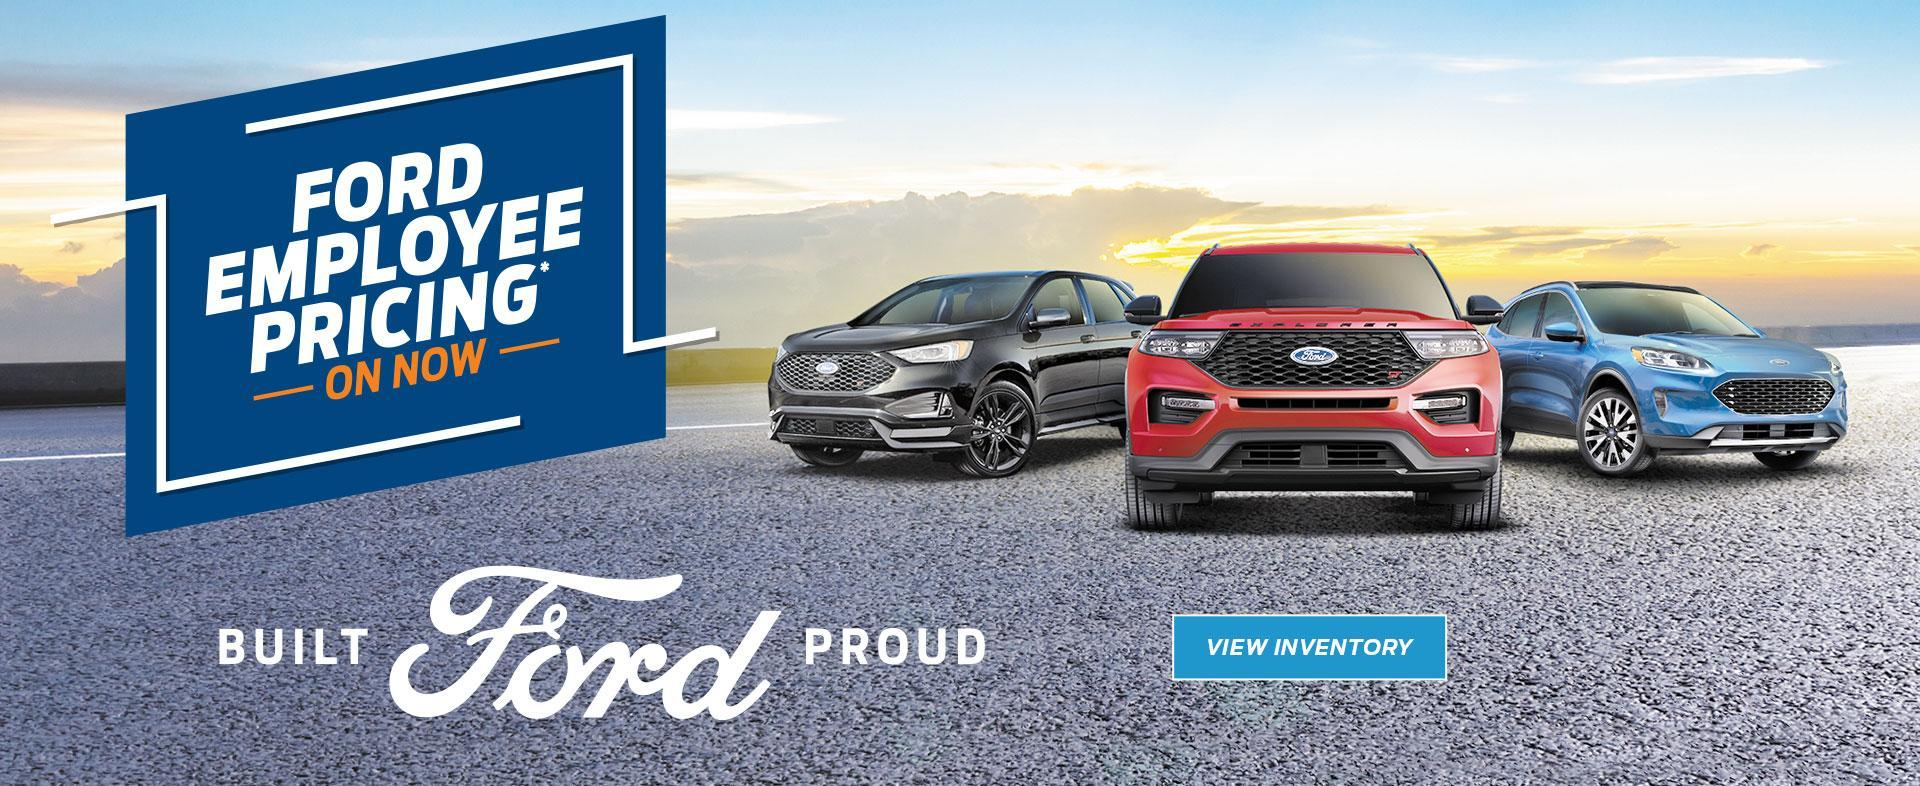 Ford of Canada Employee Pricing is Back